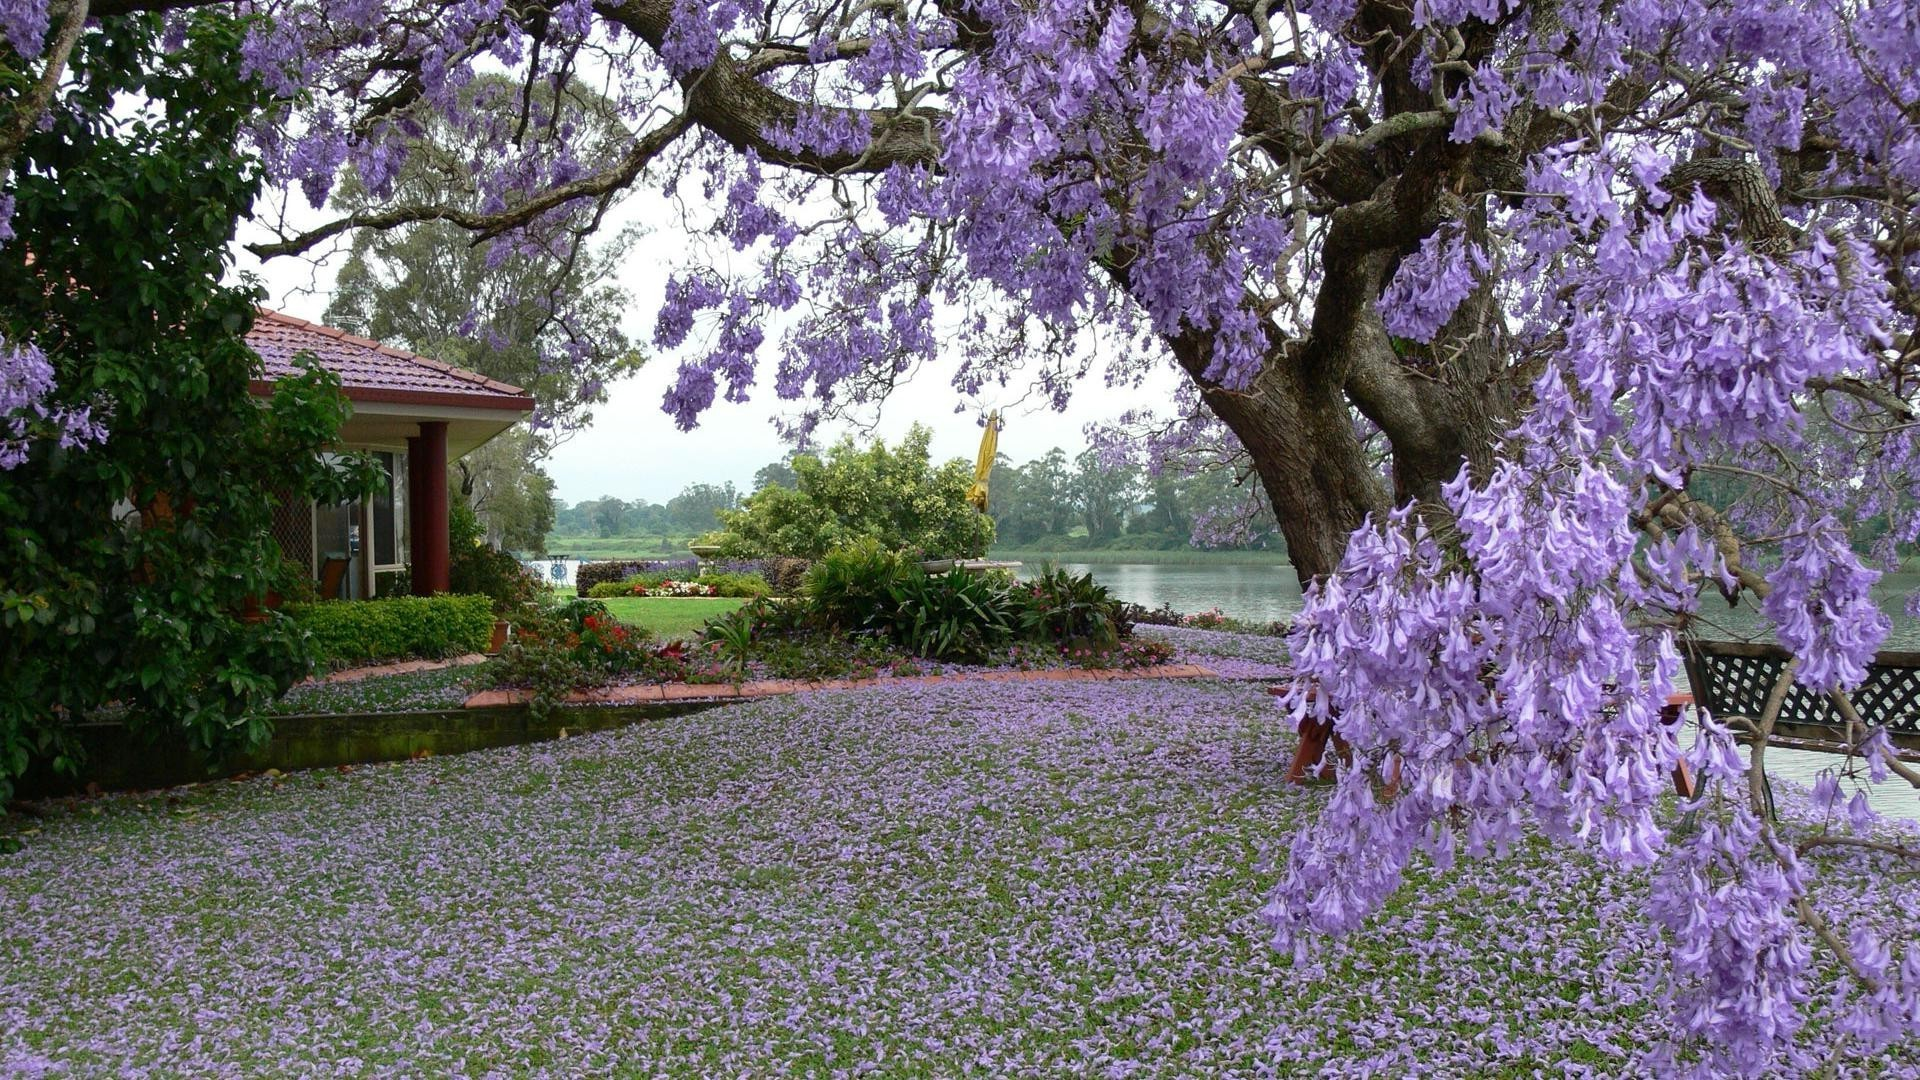 trees flower garden tree flora blooming nature springtime park floral season outdoors color lavender leaf summer petal branch landscape beautiful